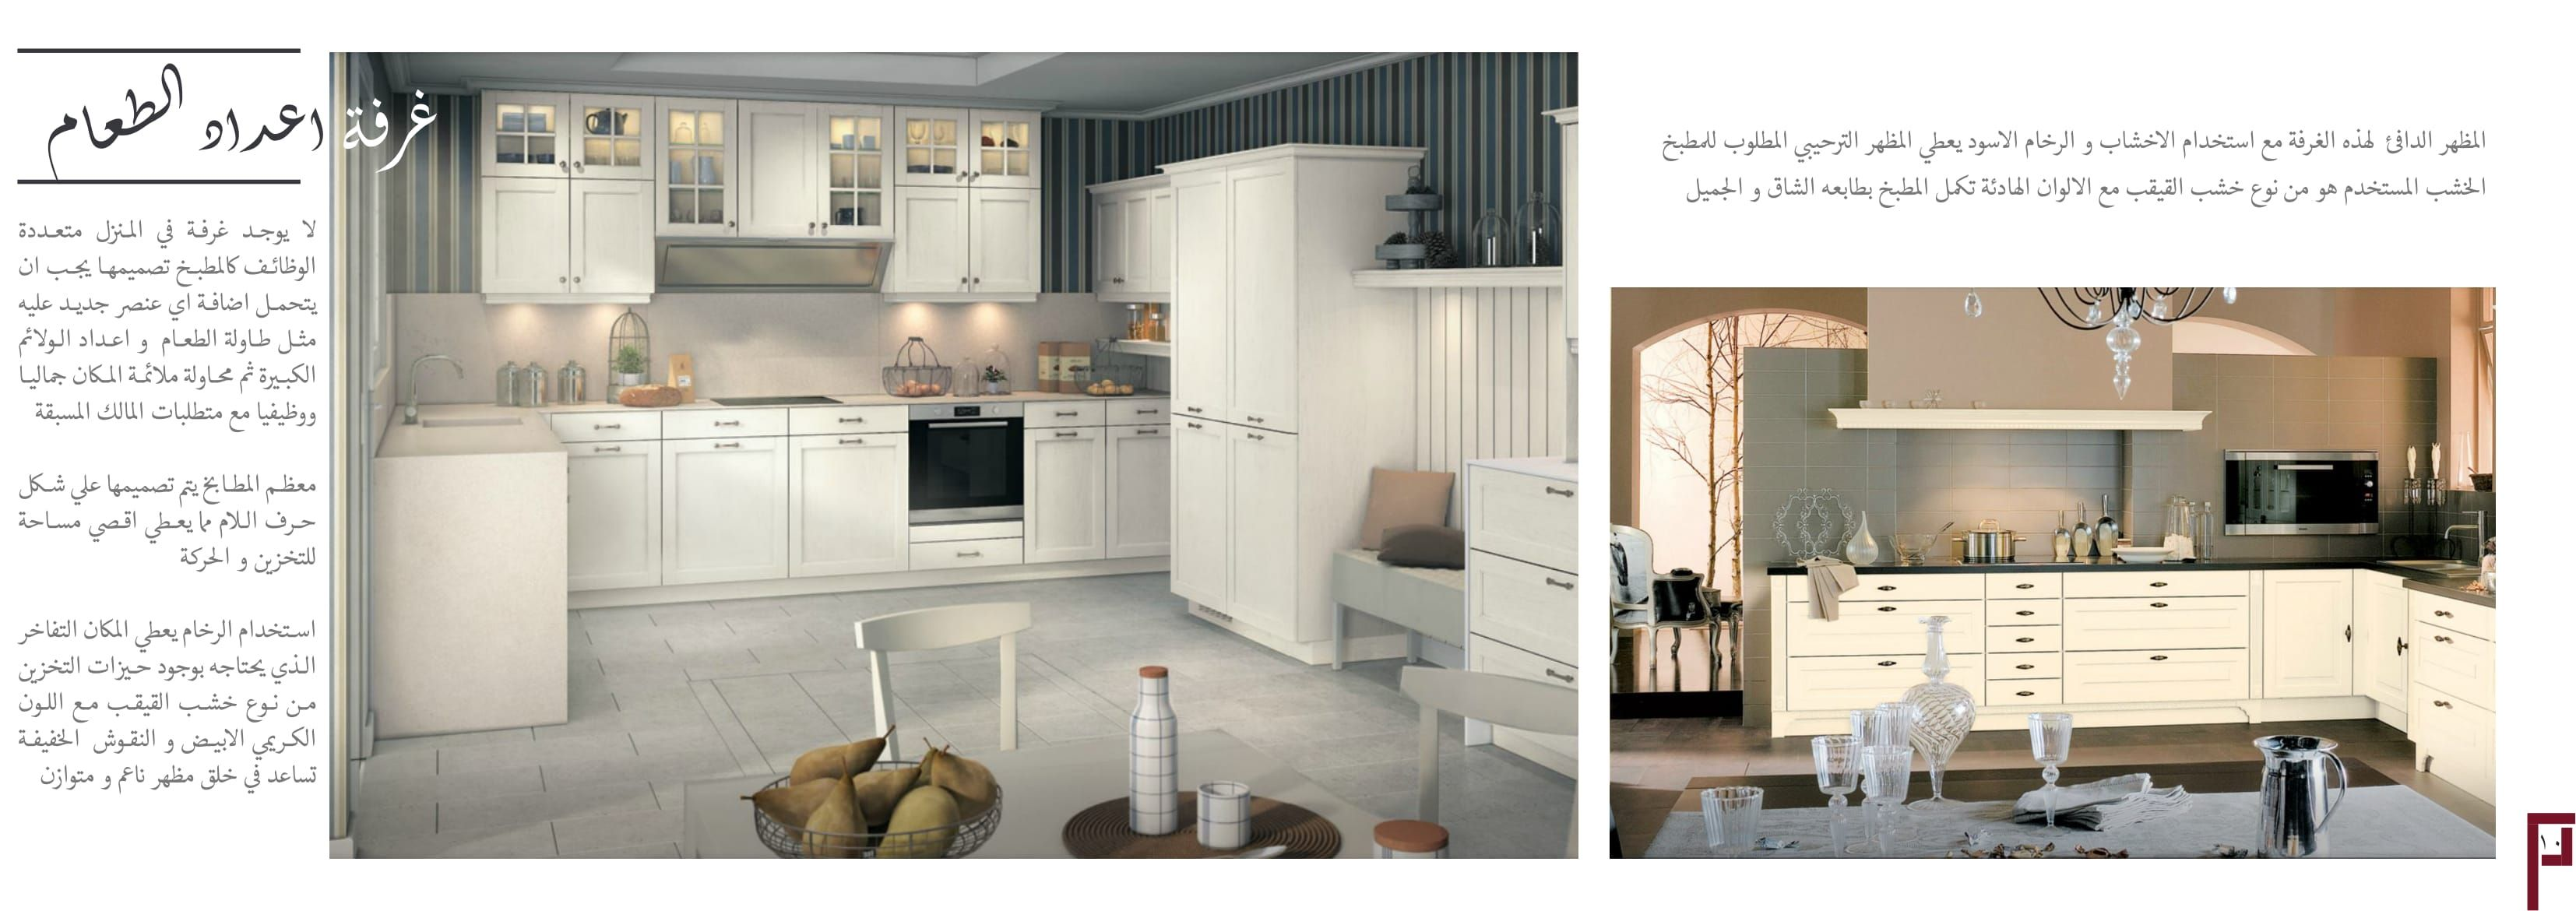 Pin By Portray Interior Design And De On Portray Interiors Brochure كتيب الاعمال بورتراي للتصاميم Wooden Kitchen Wood Cabinets Home Decor